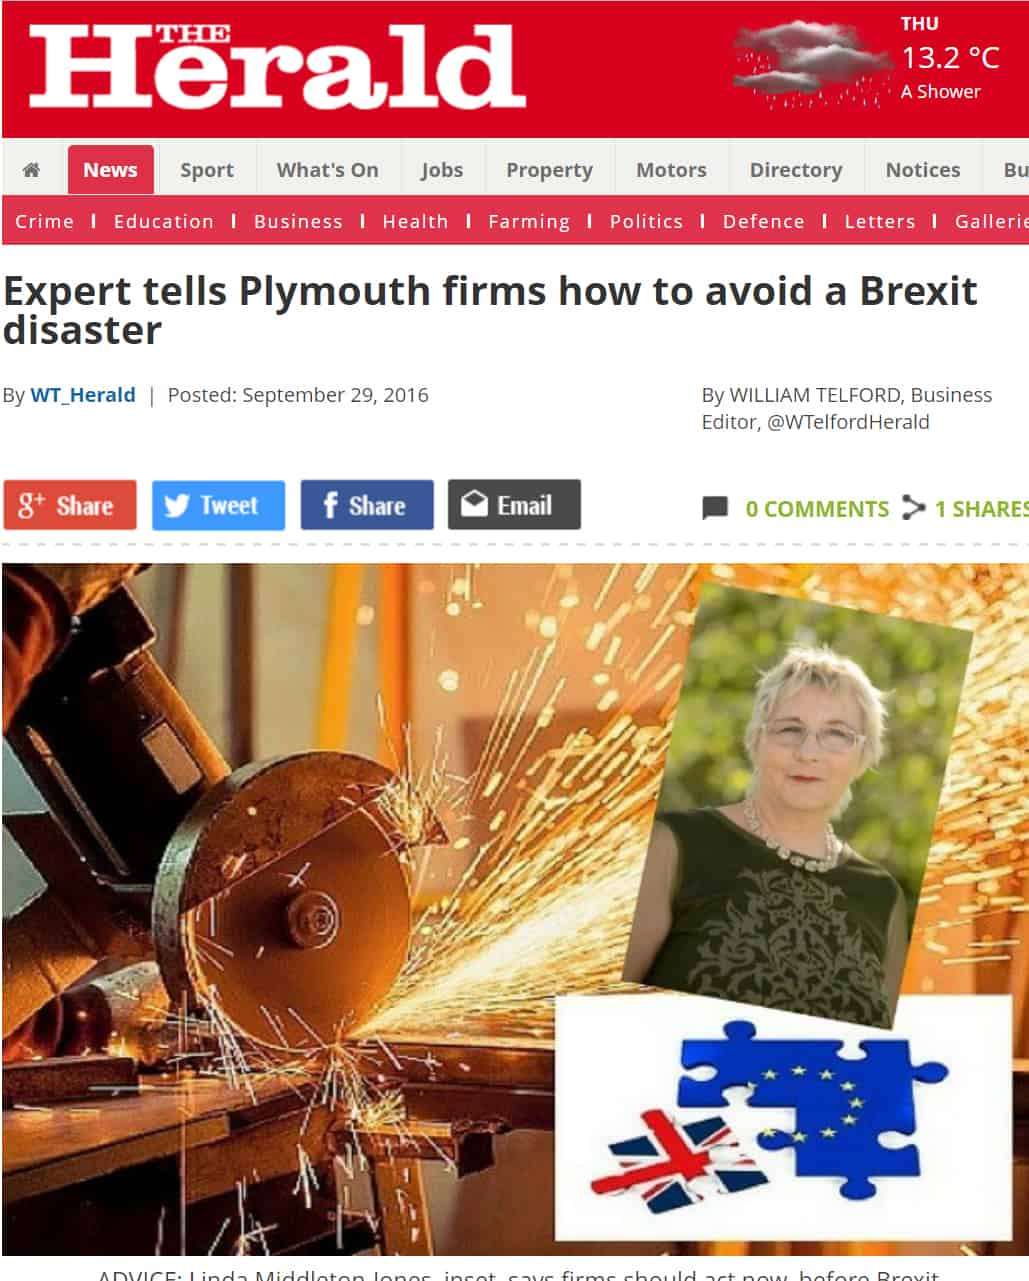 Brexit advice from Middleton Jones in Plymouth Herald